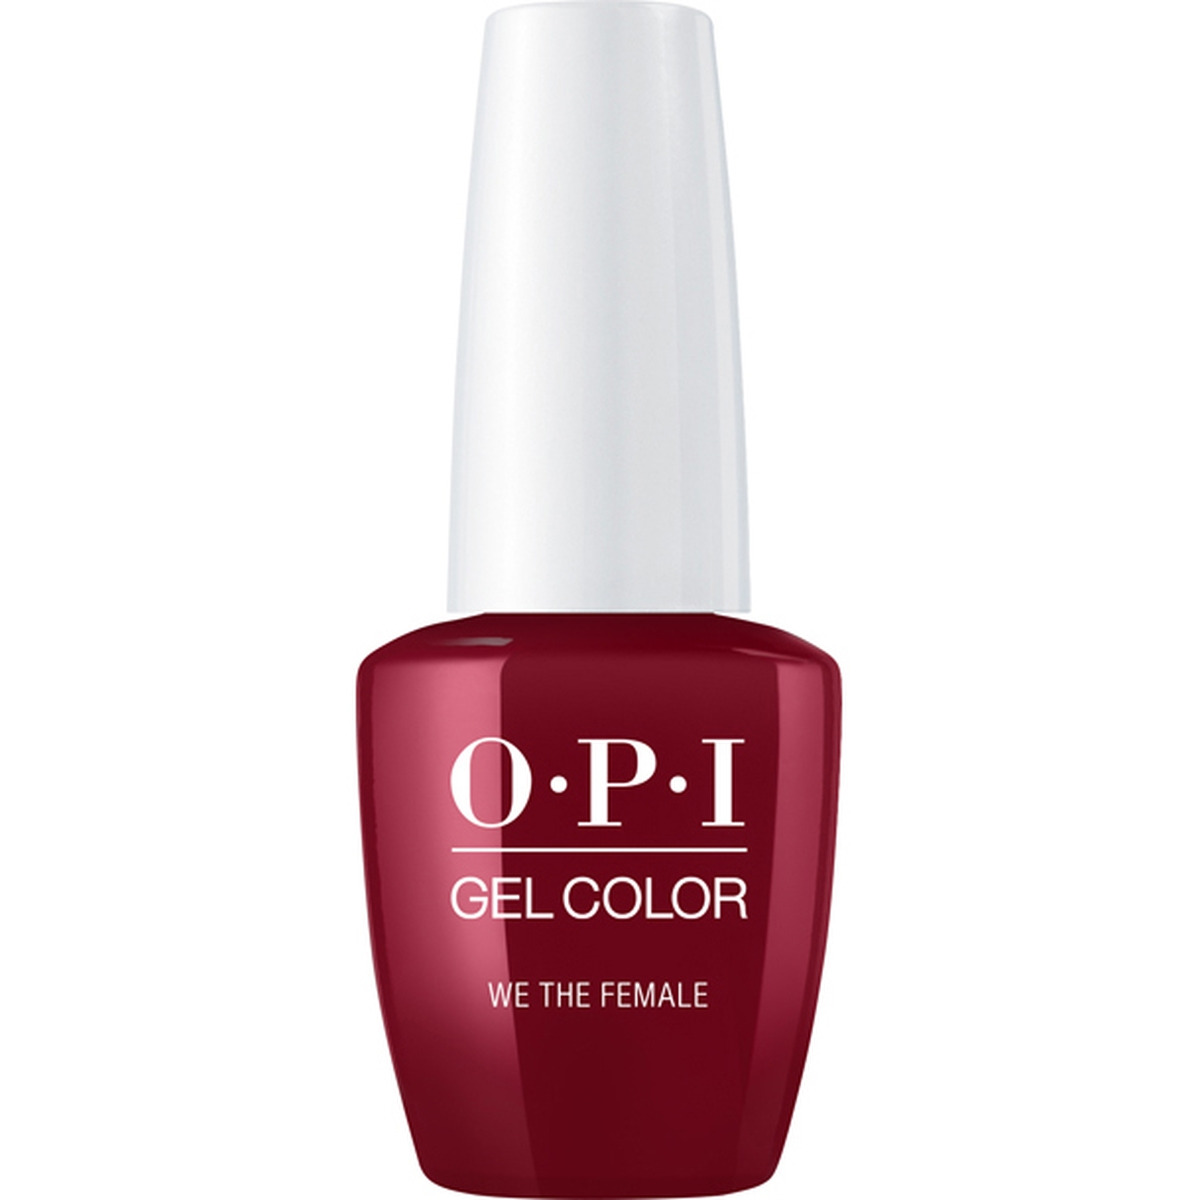 OPI Гель-лак GelColor We The Female, 15 мл